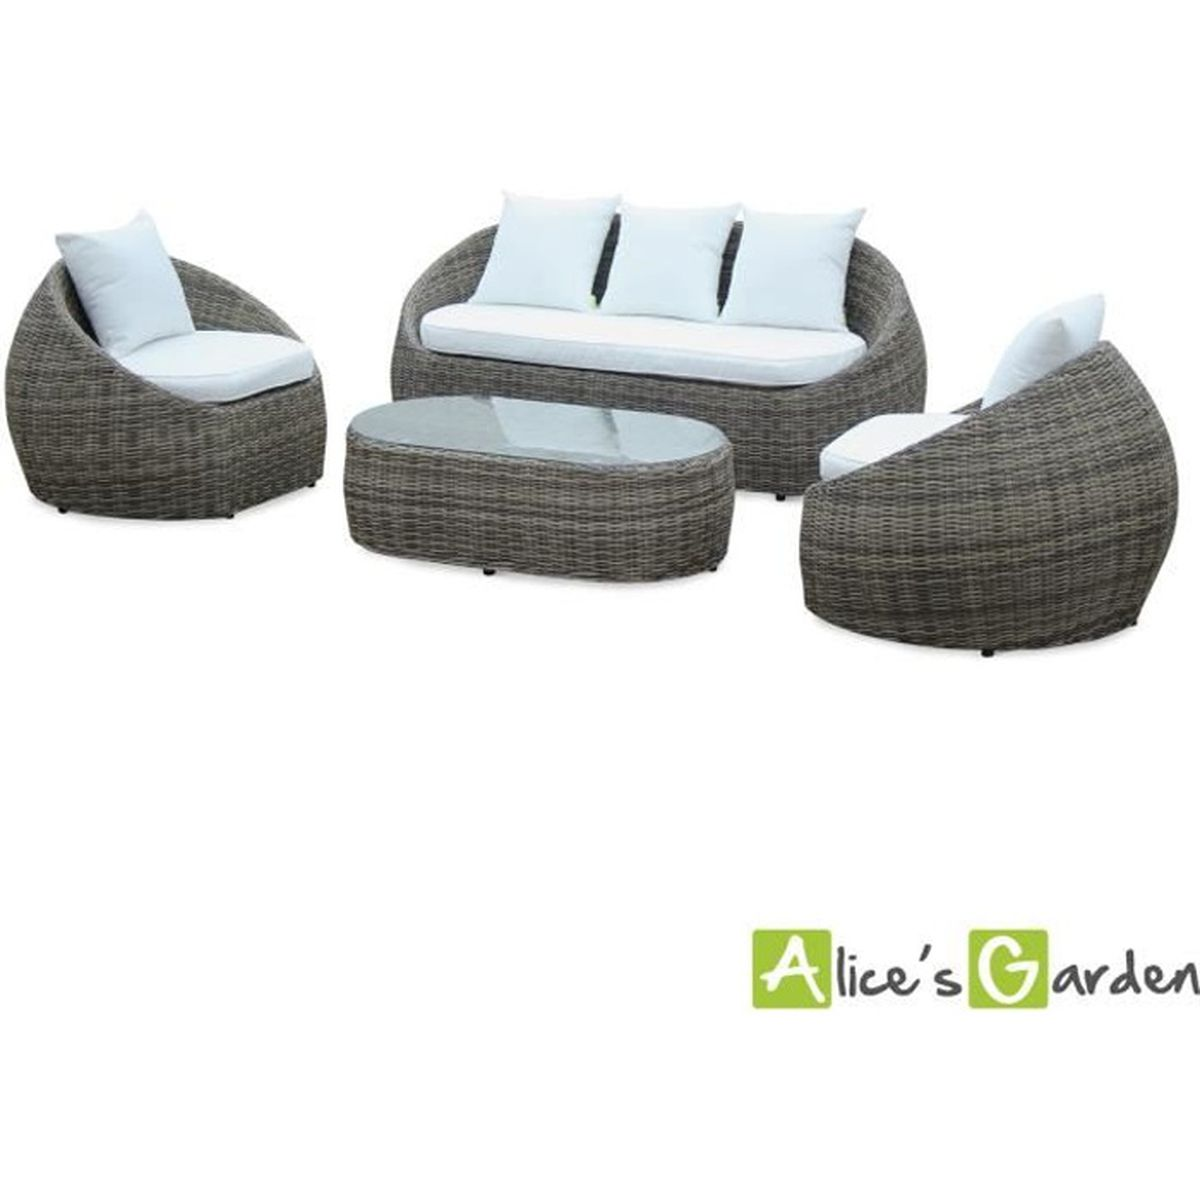 Salon de jardin design arrondi ritardo en r sine tress e arrondie 4 places table canap et - Salon de jardin resine tressee gris ...